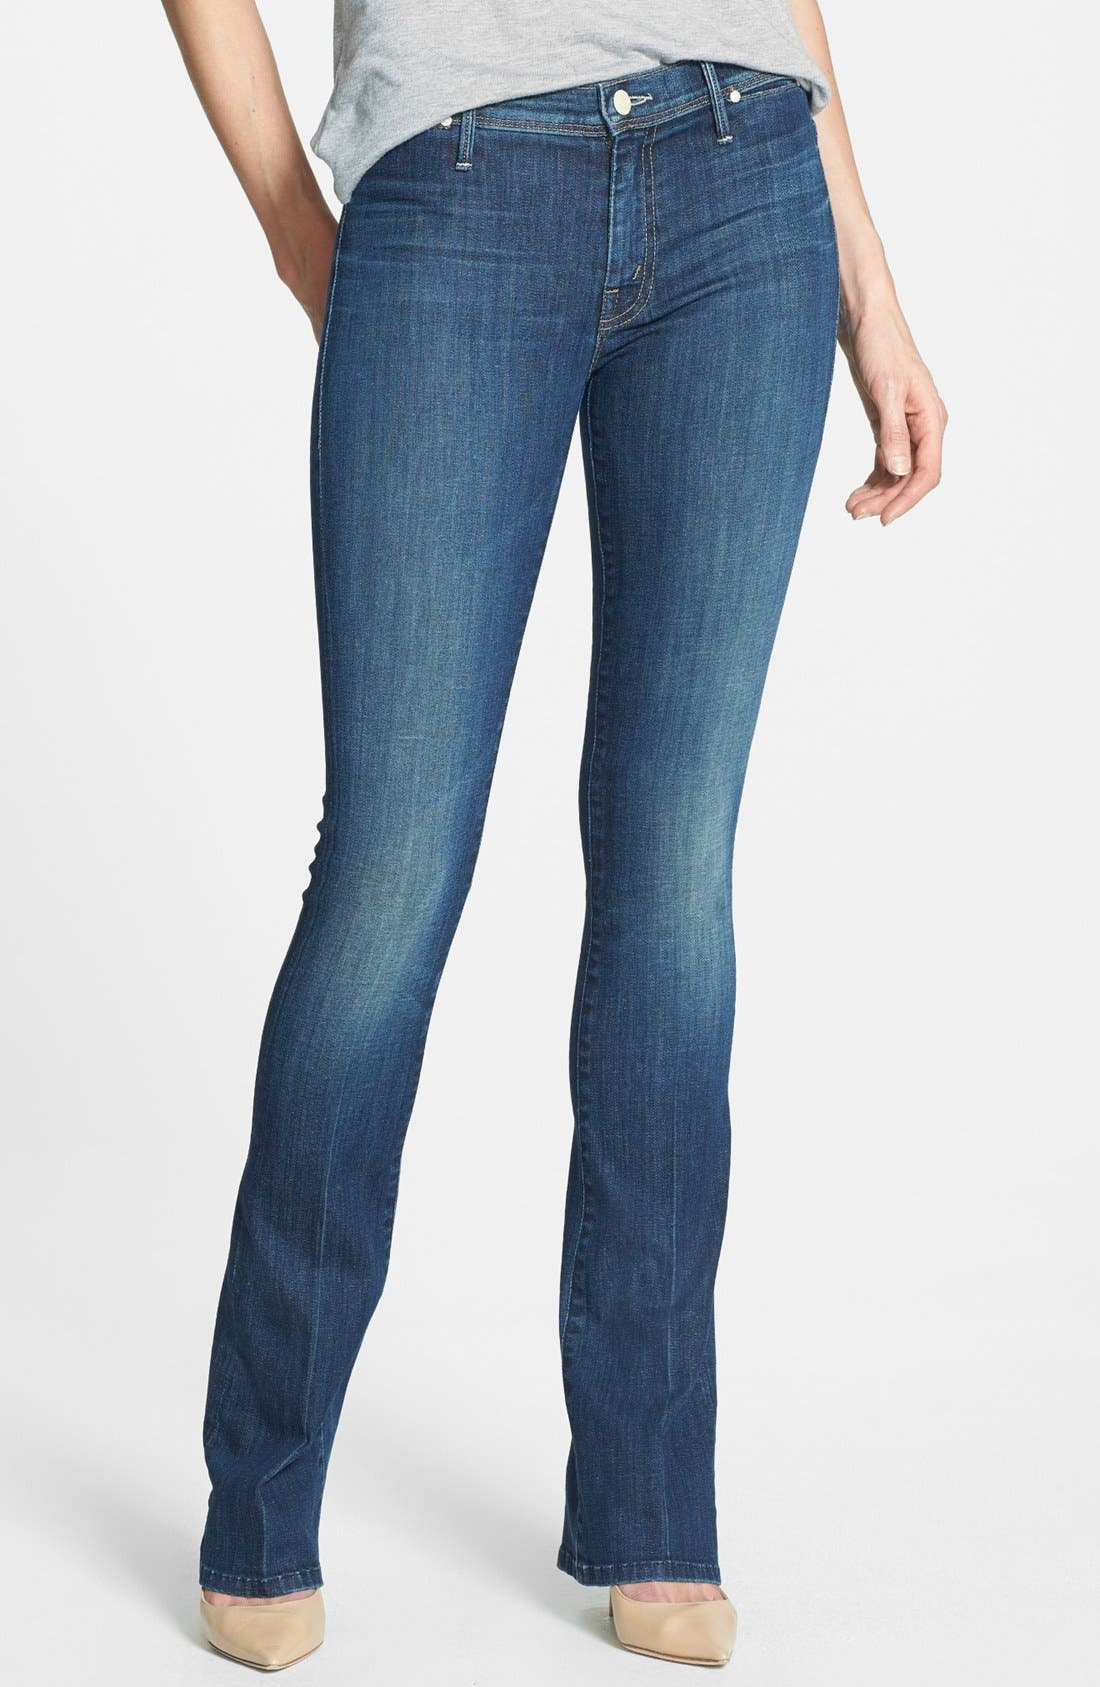 Alternate Image 1 Selected - MOTHER 'Daydreamer' Skinny Flare Leg Jeans (Waltz at Midnight)